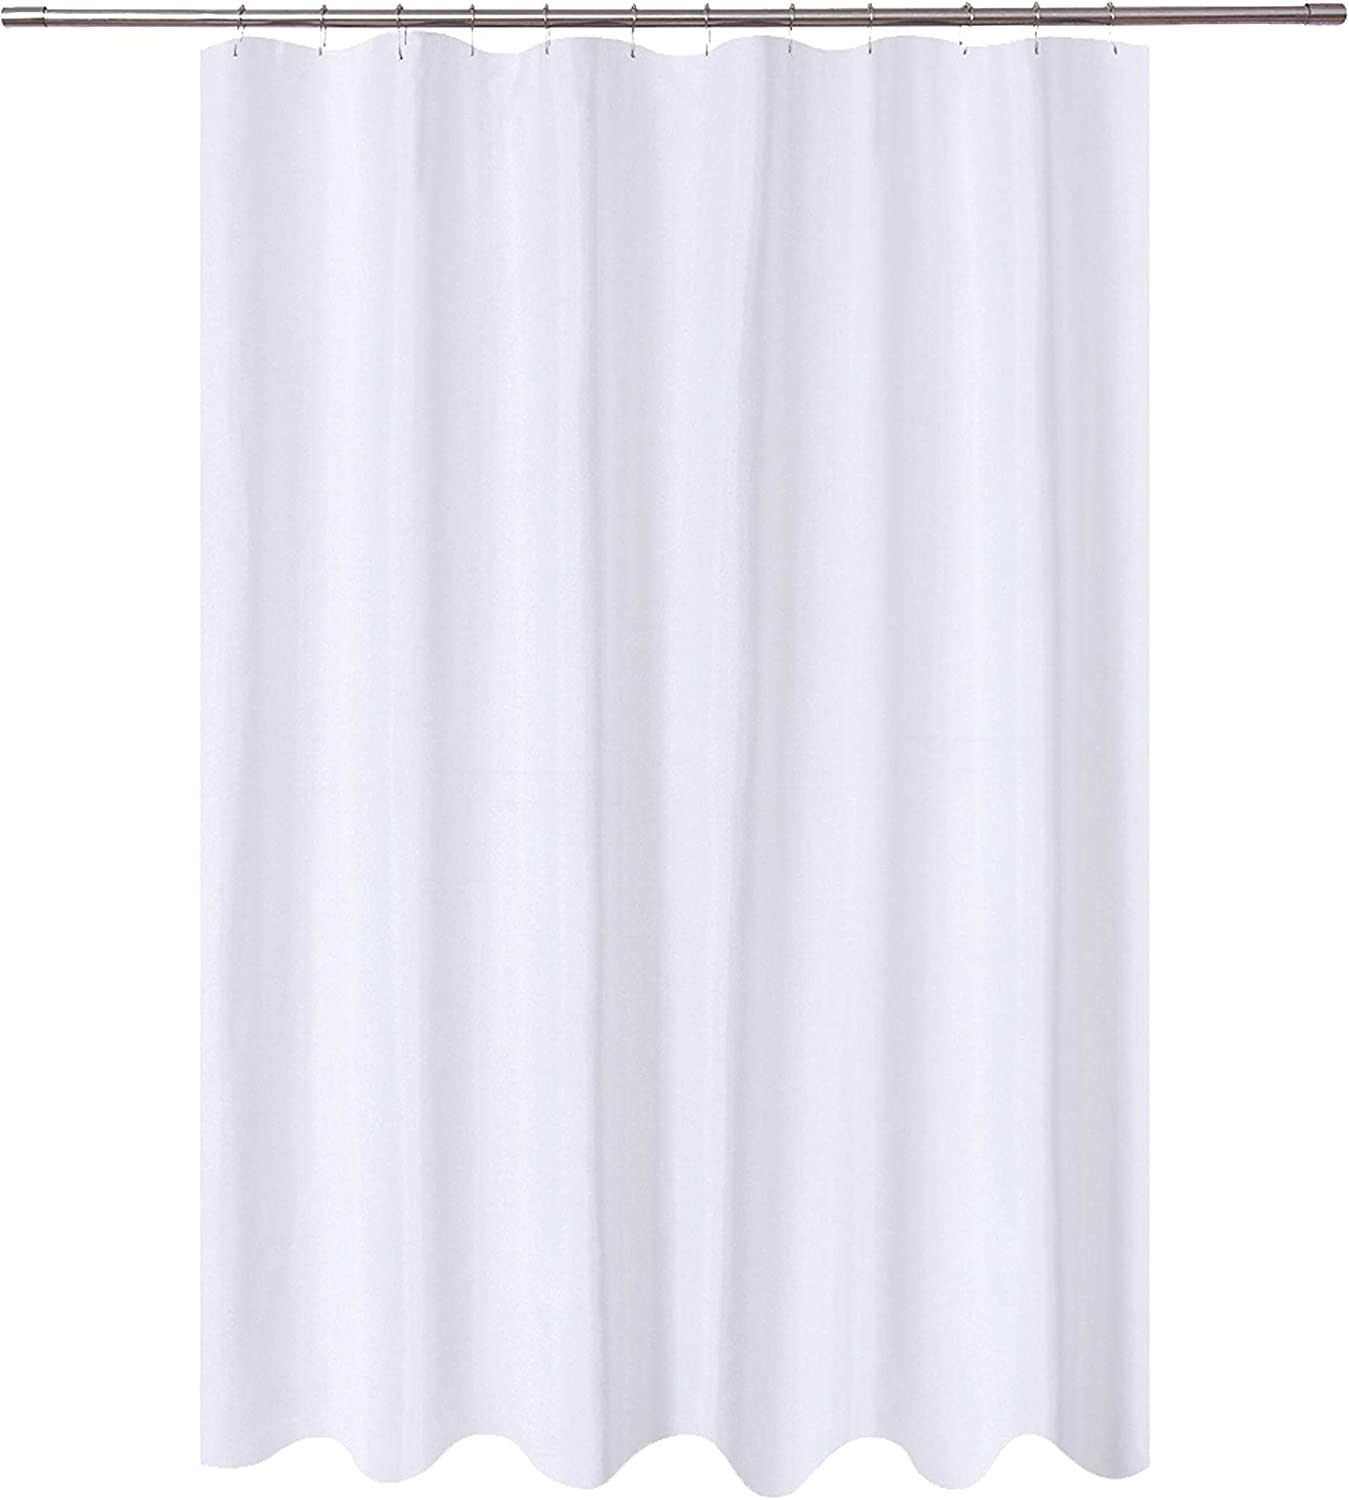 NY HOME Fabric Shower Curtain Liner Nashville-Davidson Mall Extra 72 x Charlotte Mall Inches 84 Long w